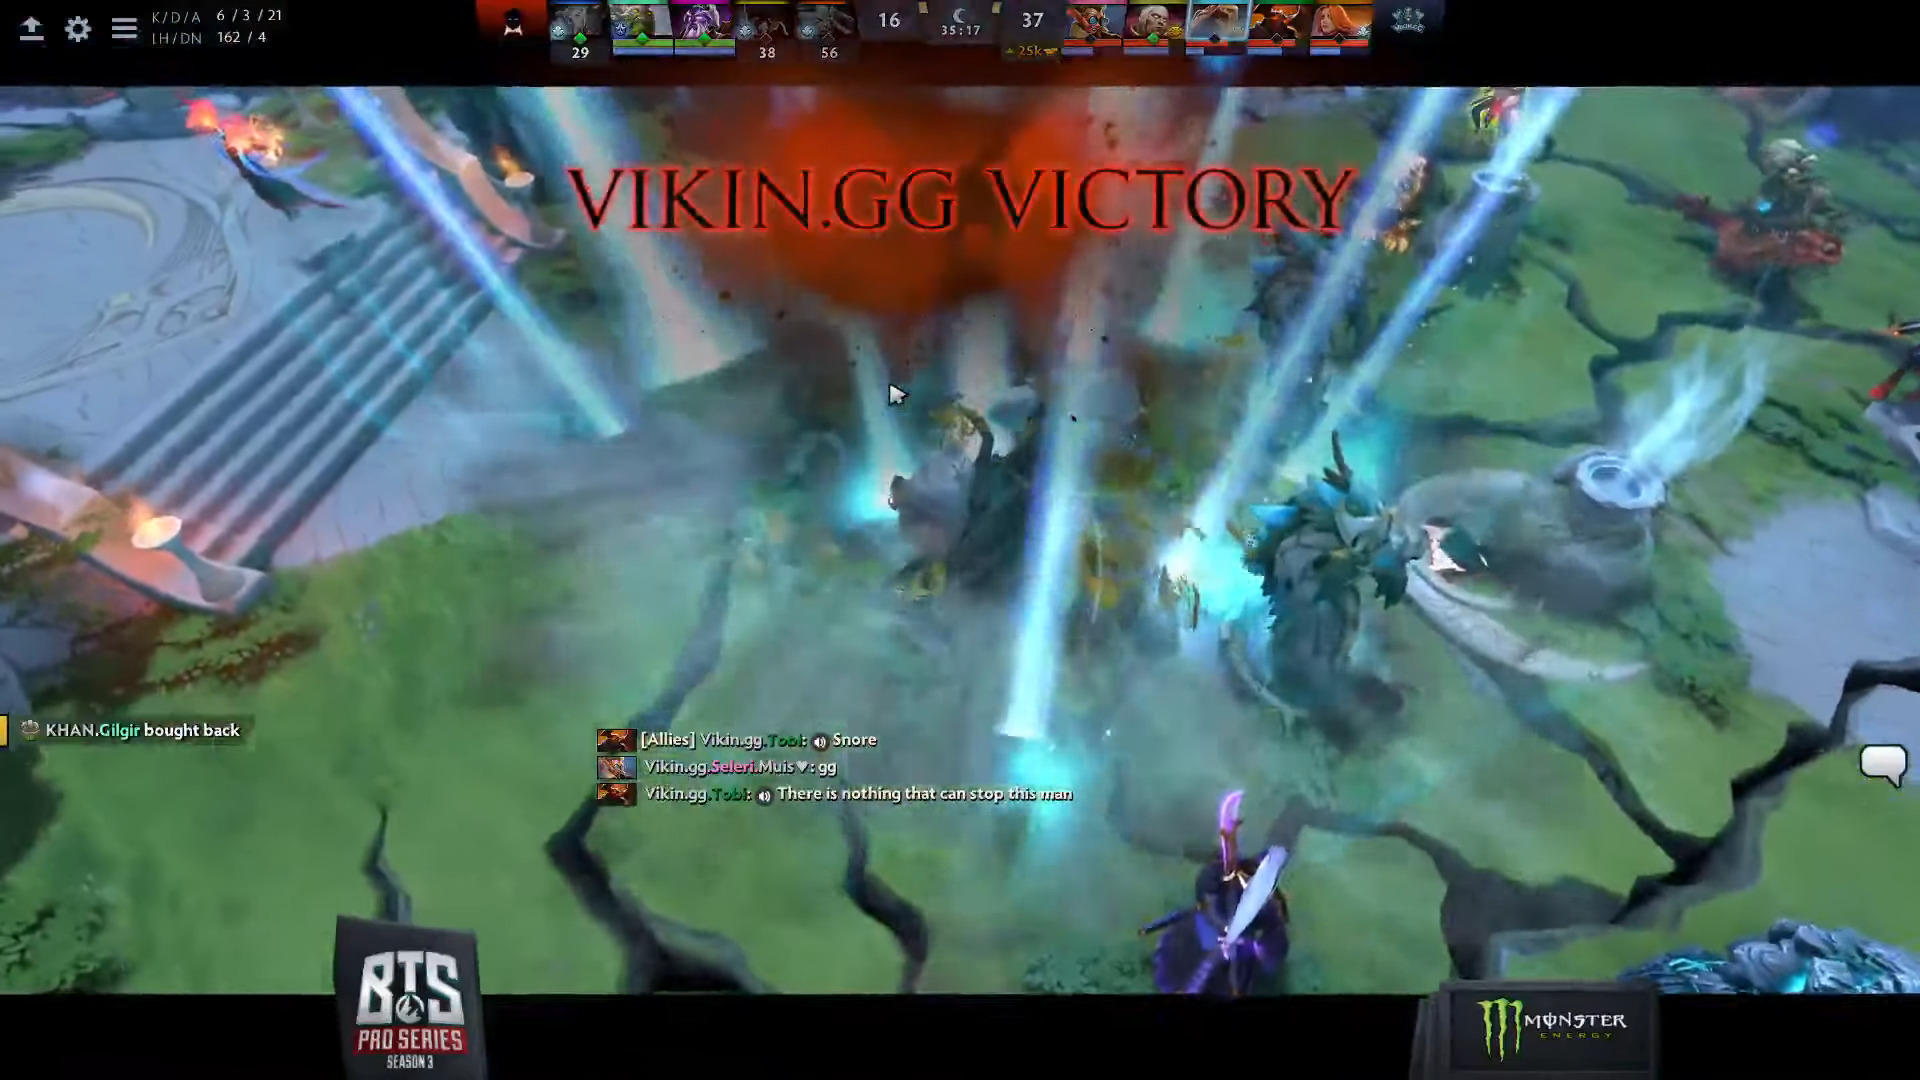 Vikin.gg Sweeps Mudgolems In The Finals To Win The European Tier 2 BTS Pro Series Season 3